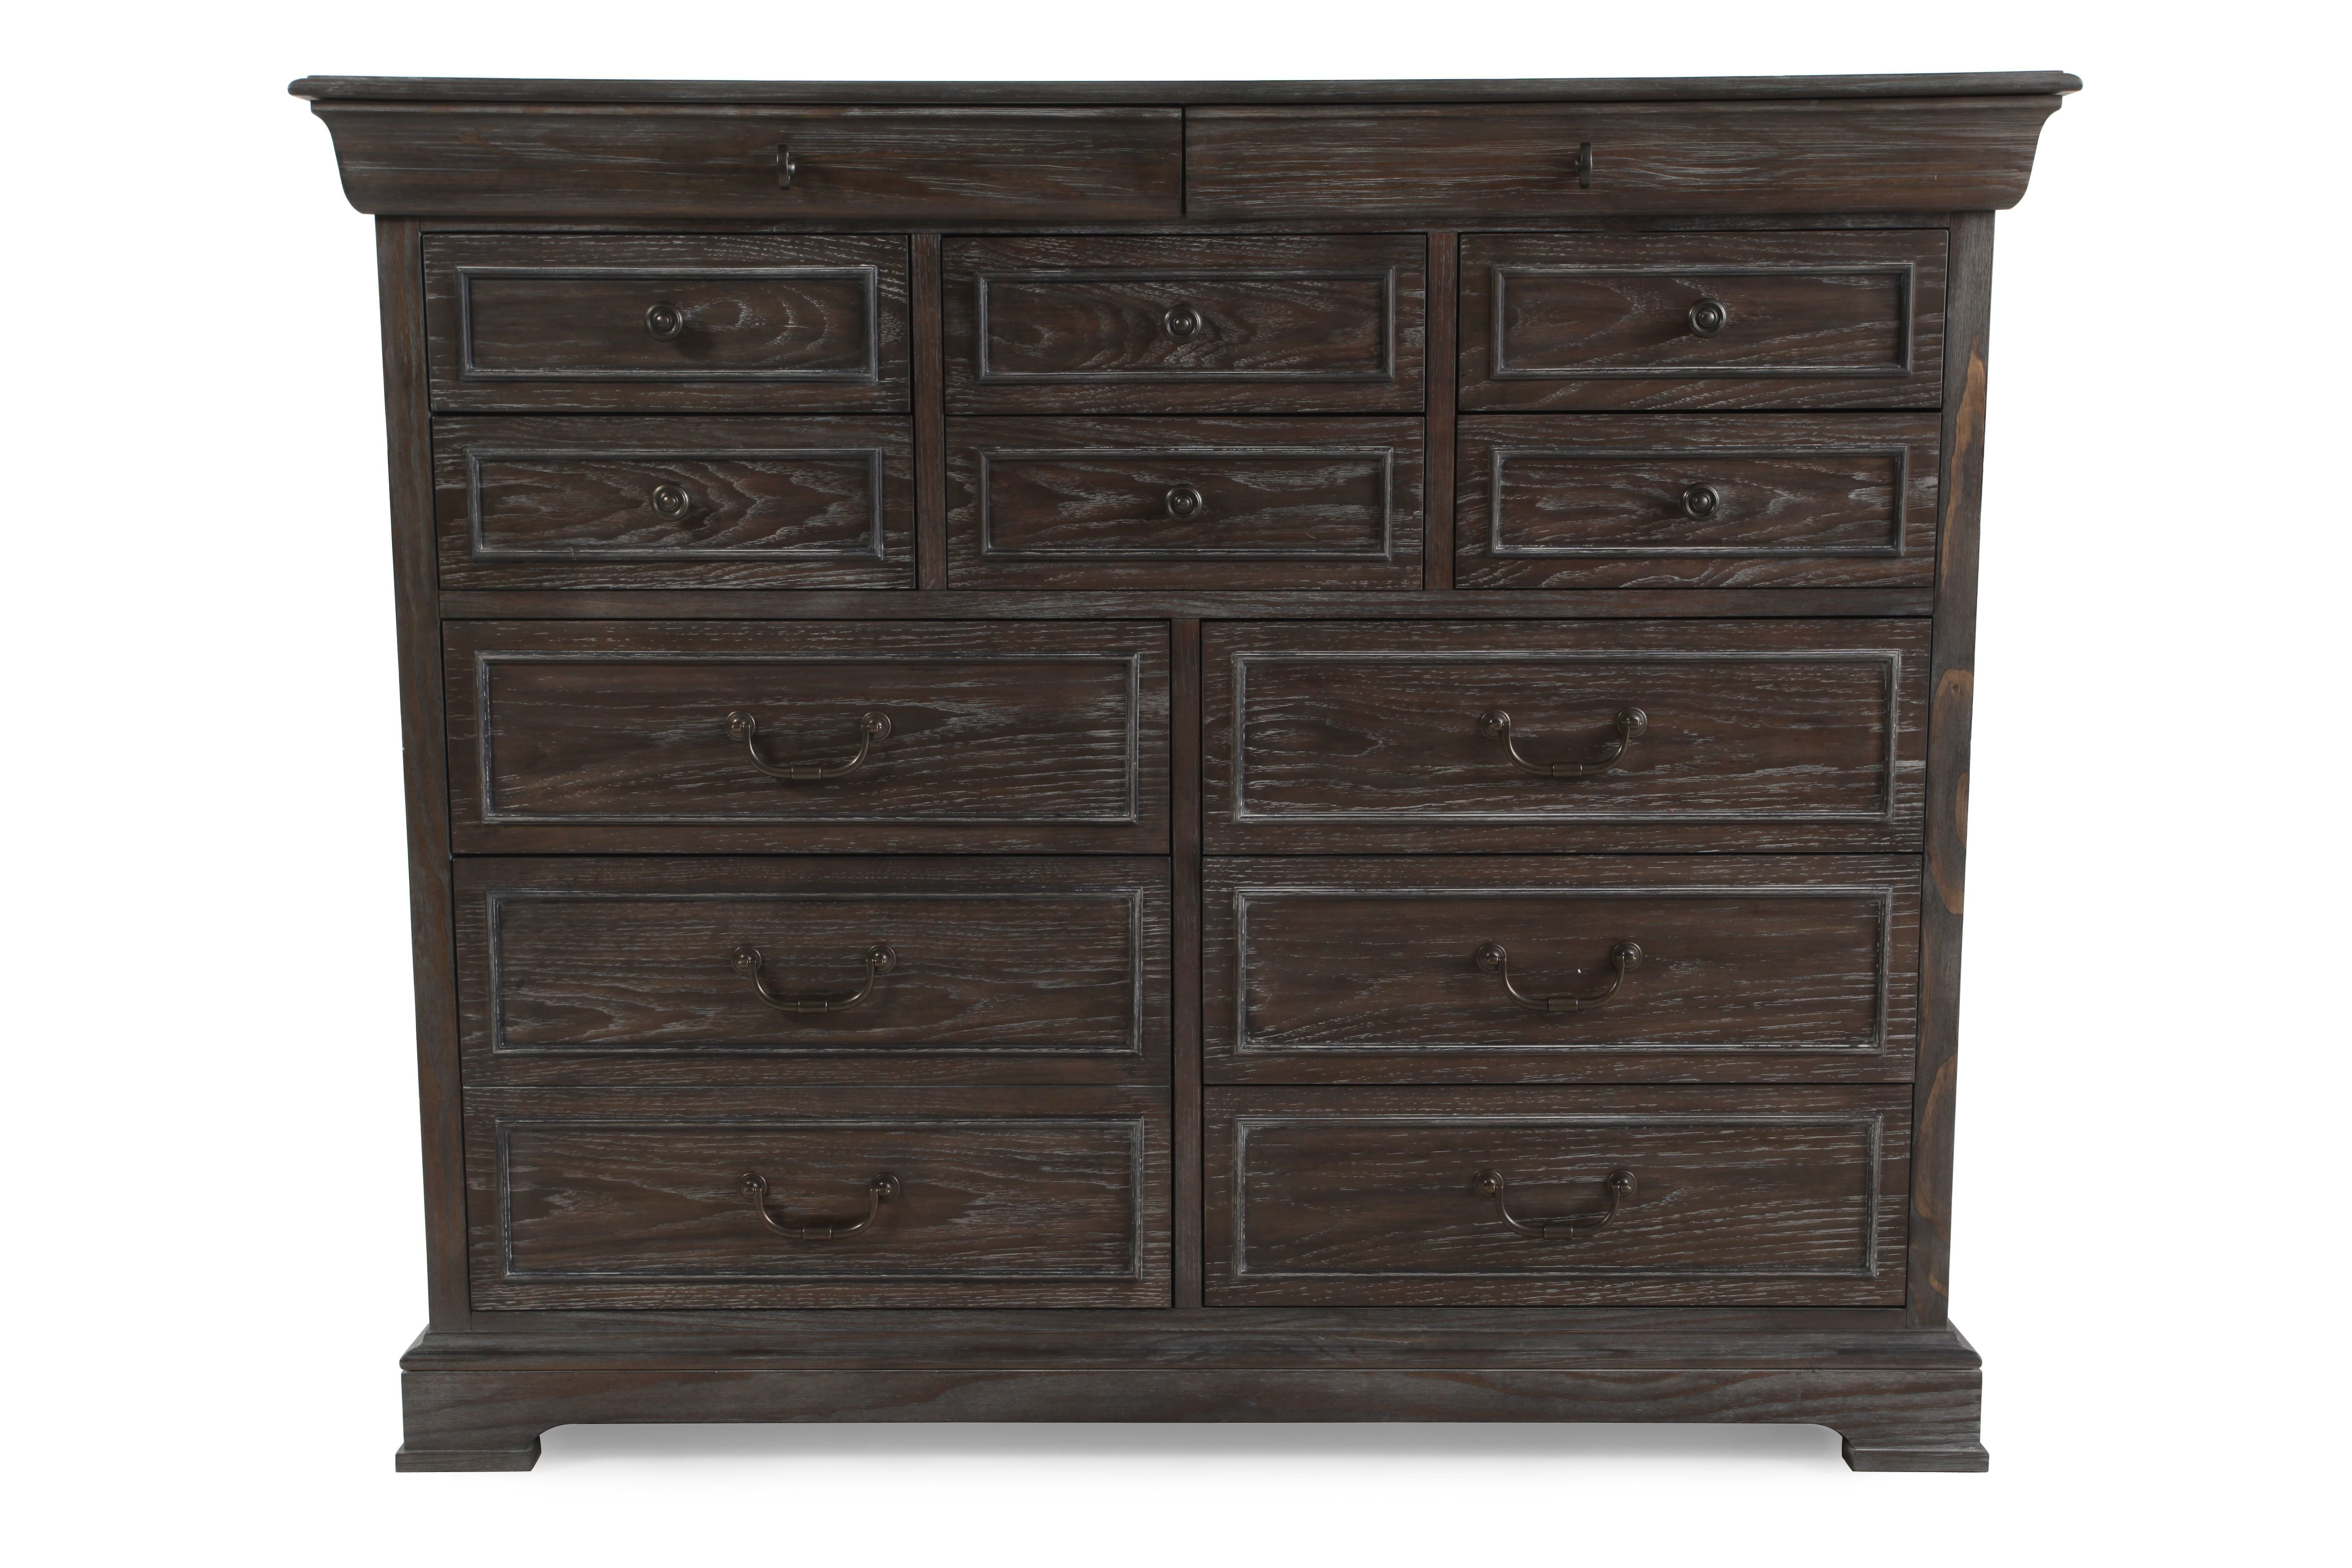 Best A R T Furniture St Germain Large Dresser Mathis With Pictures